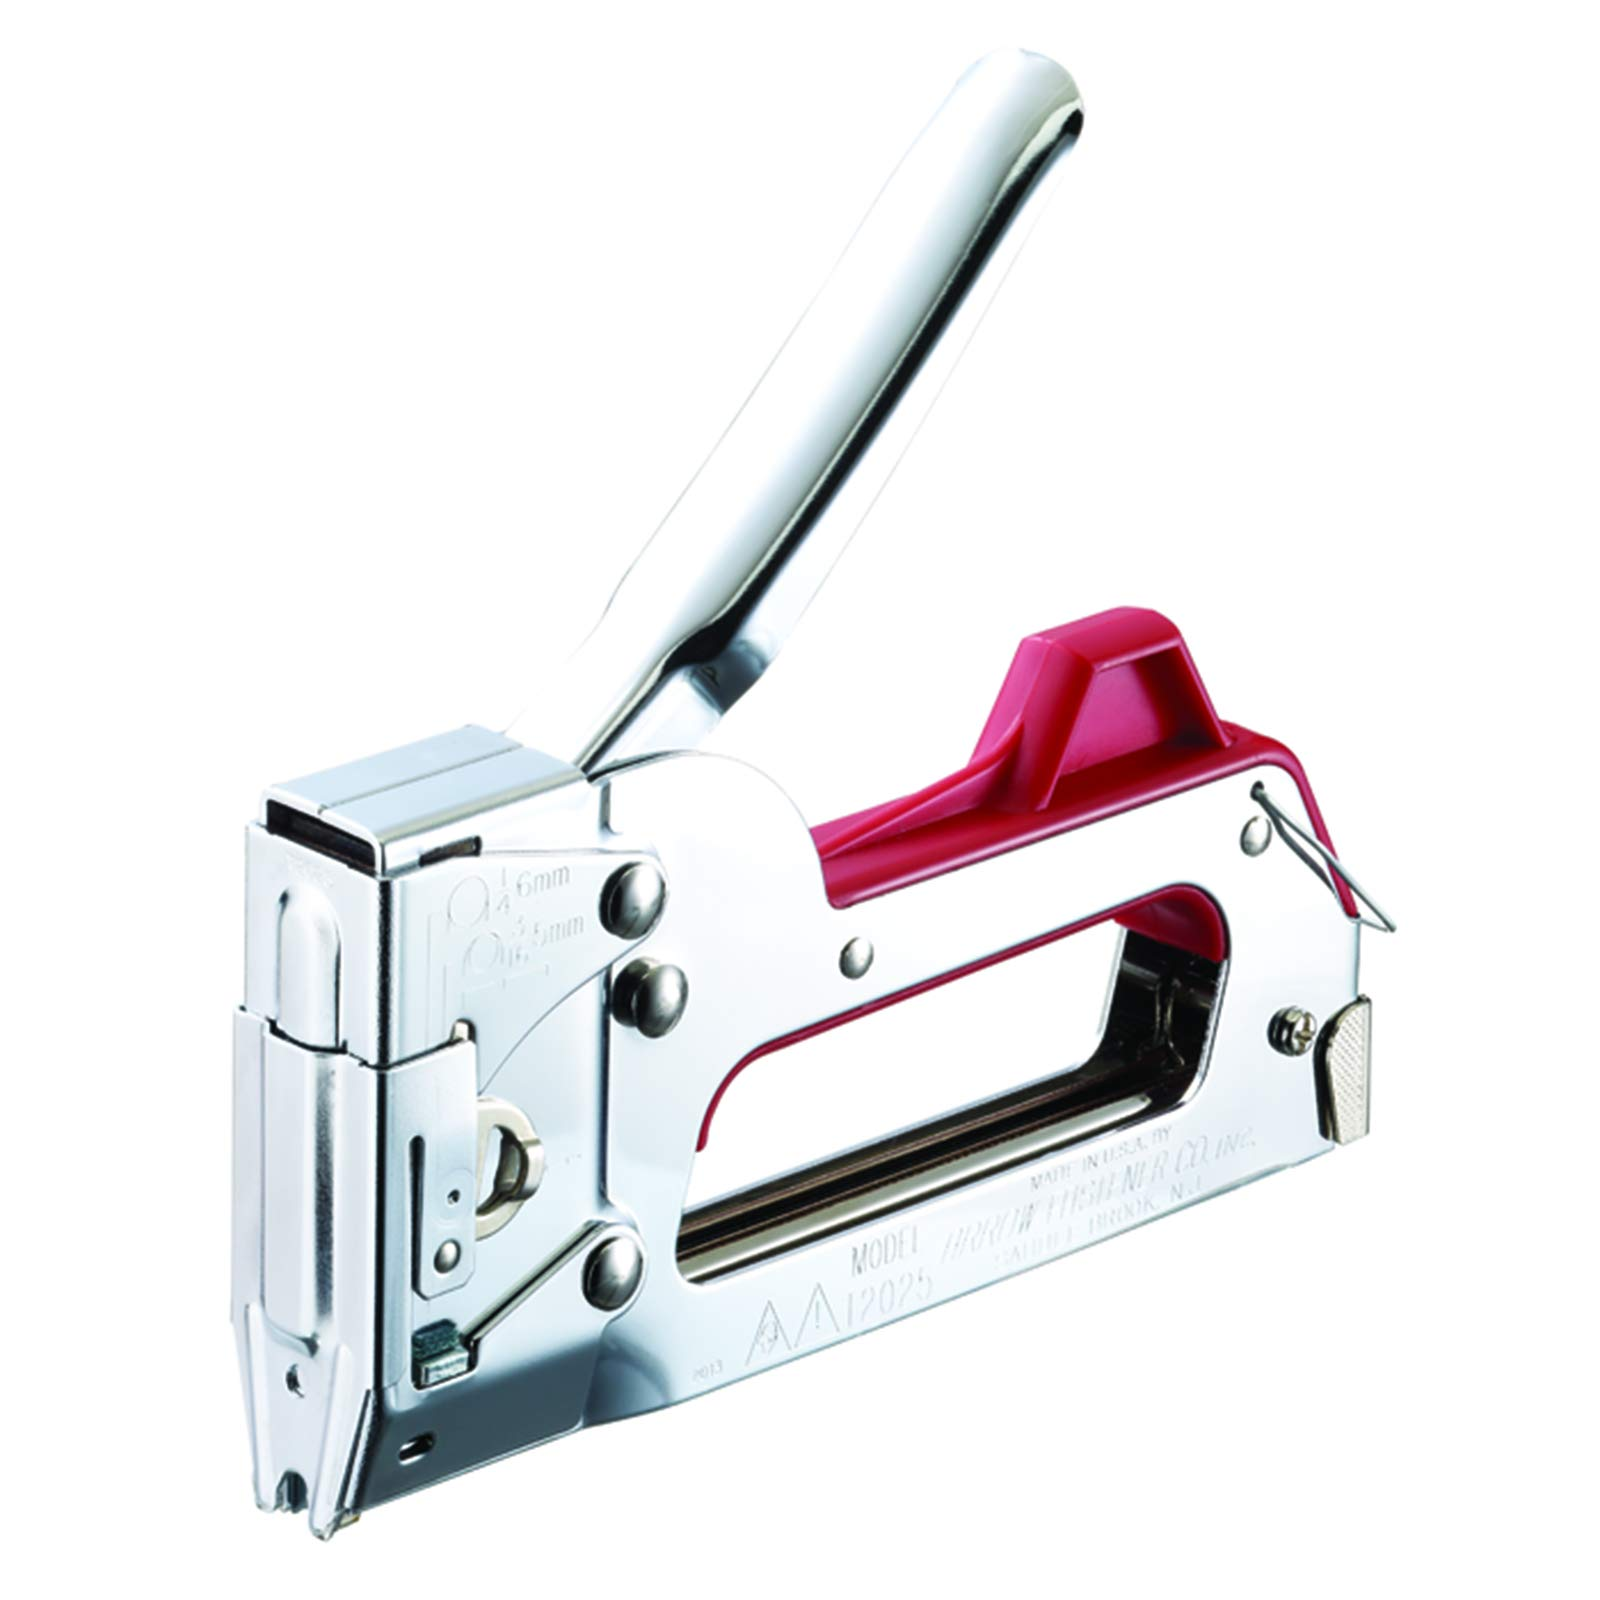 Arrow Fastener T2025 Dual Purpose Staple Gun and Wire Tacker by Arrow Fastener